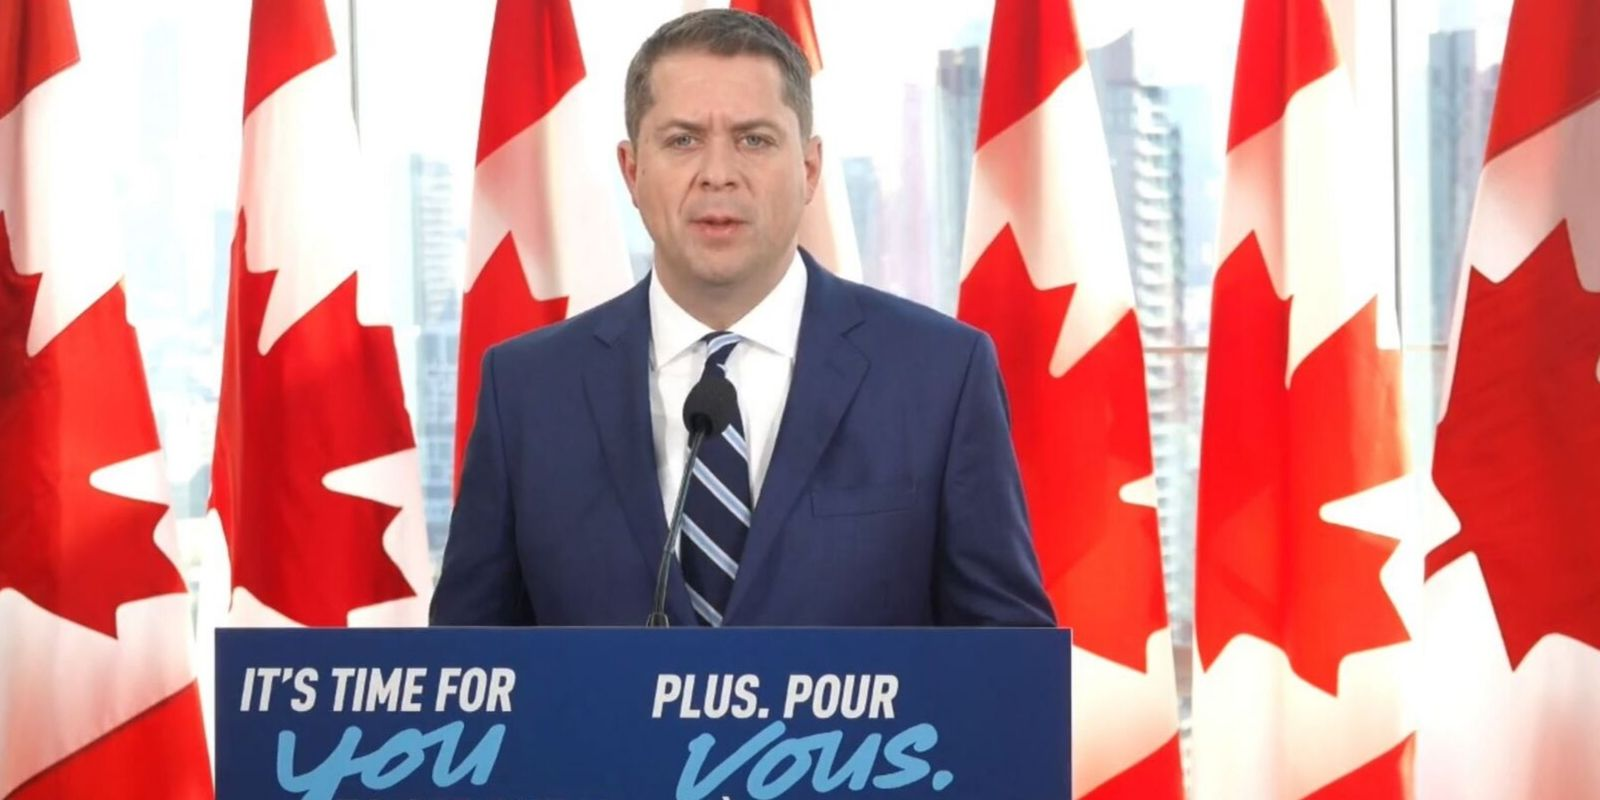 """""""I won't lift a finger"""": Scheer on repatriating ISIS fighters"""